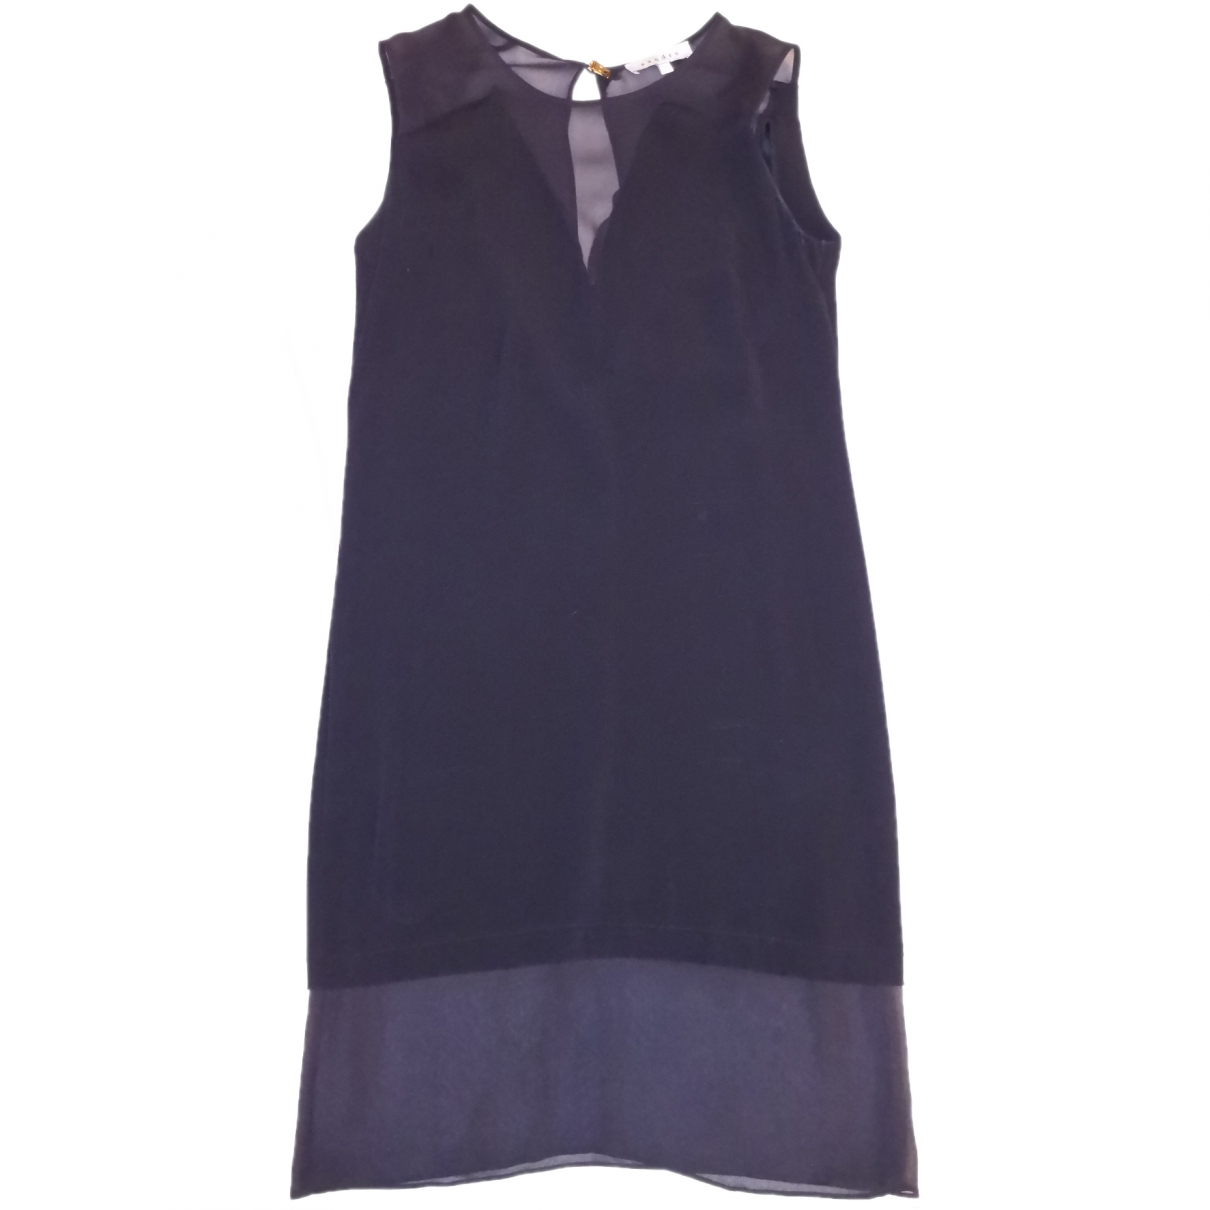 Sandro \N Black dress for Women 1 0-5